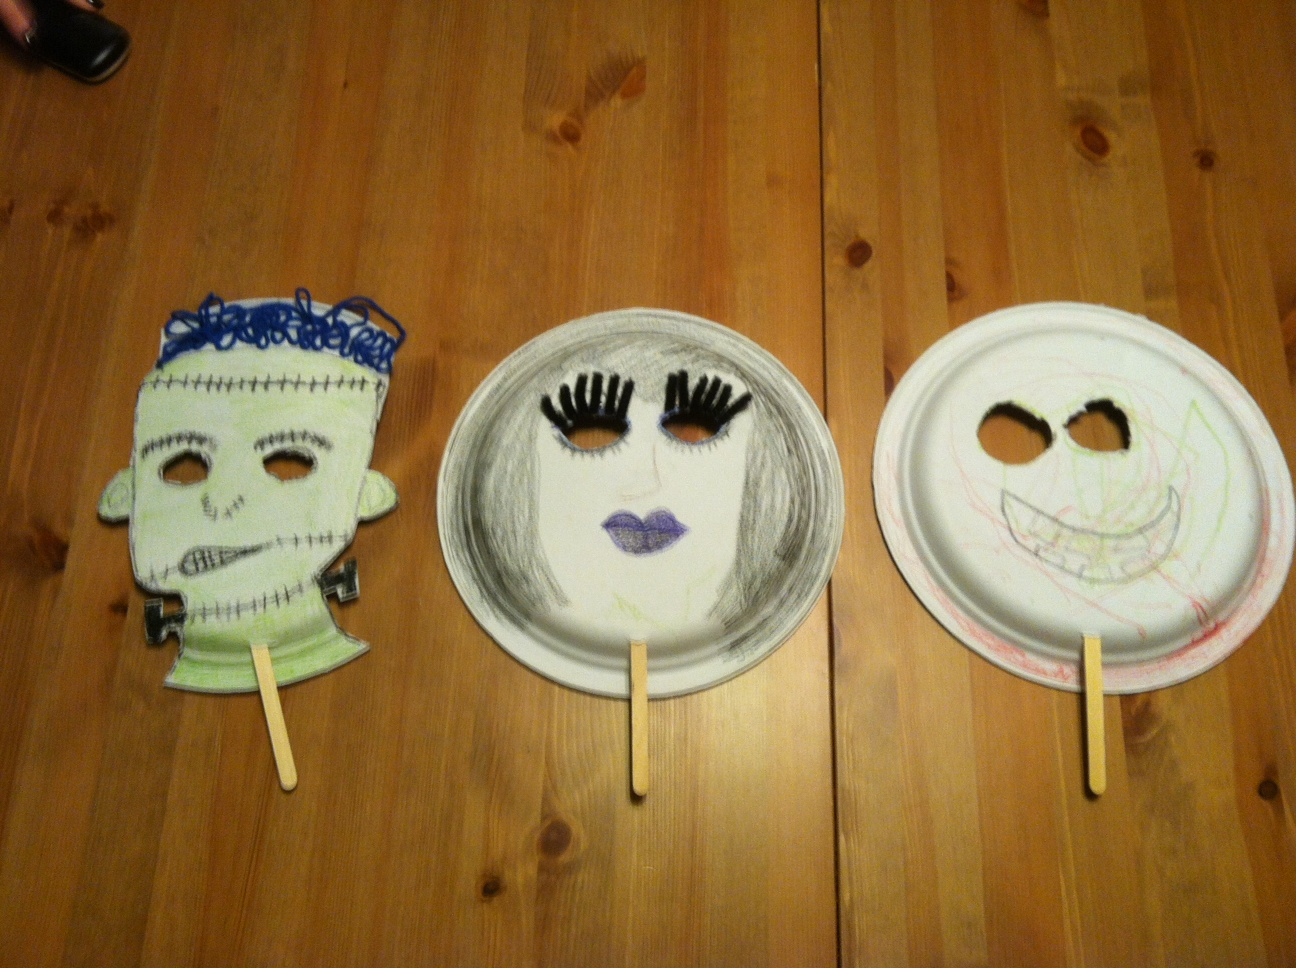 Crafts for a 3 year old - I Have A 2 Year Old And I Love Football Especially The Super Bowl My Dilemma How To Occupy A Toddler During The Big Game The Following Is My Plan On How